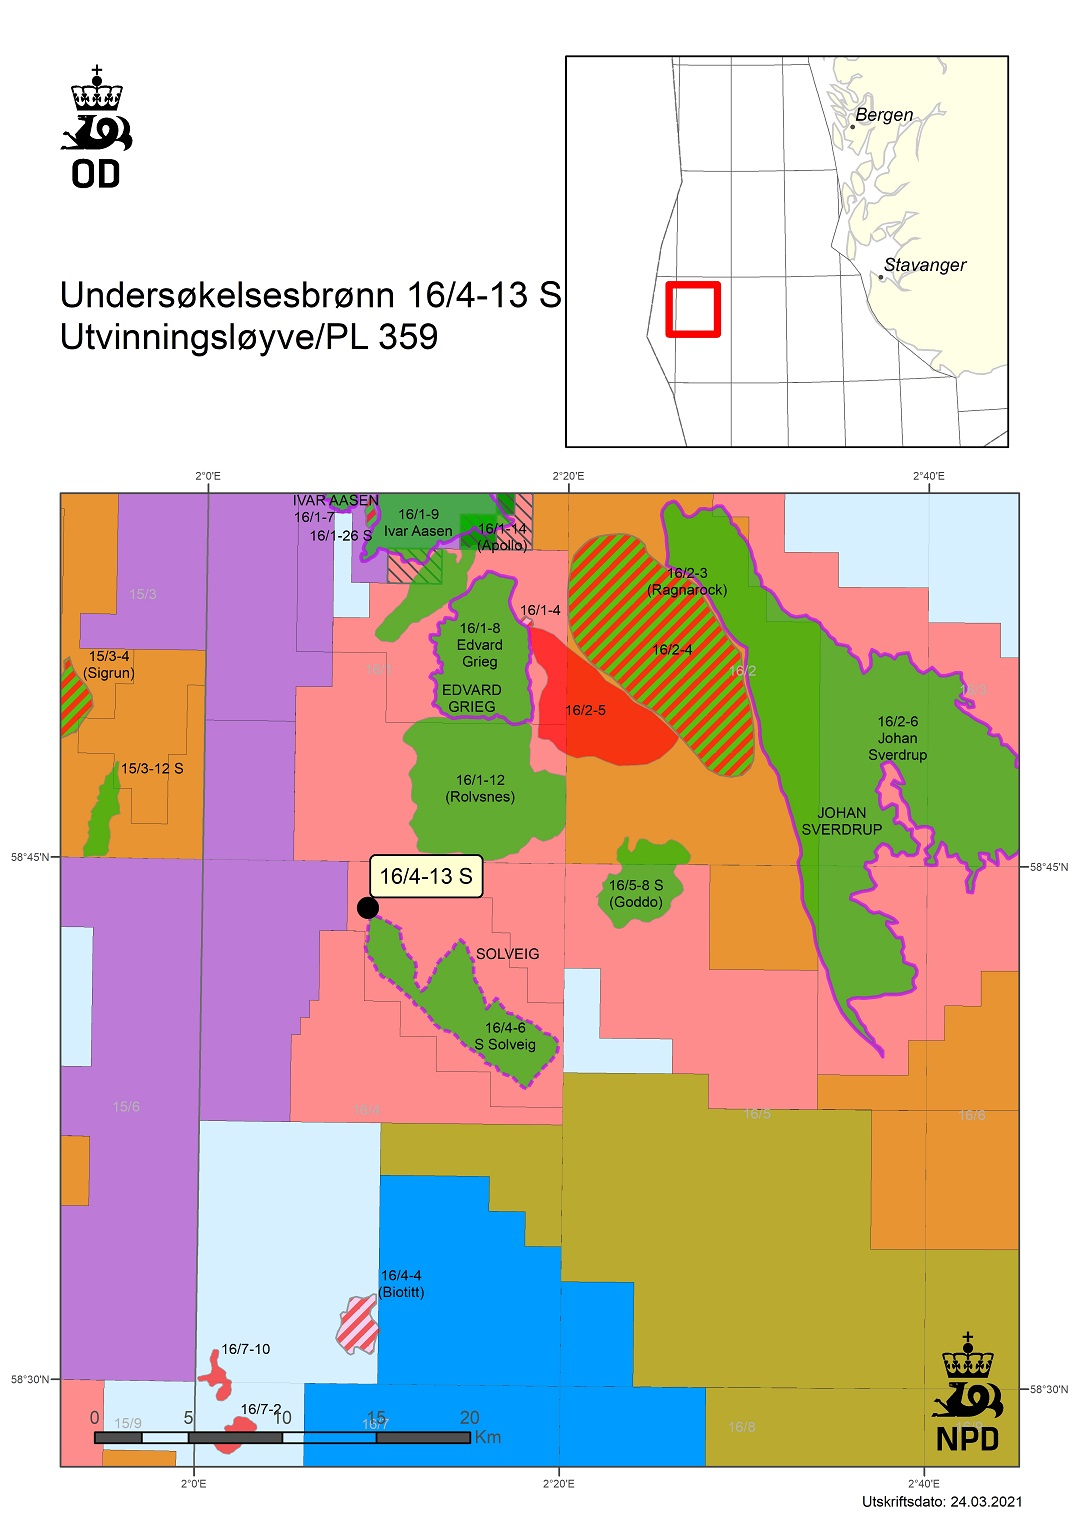 Map showing the location of well 16/4-13 S